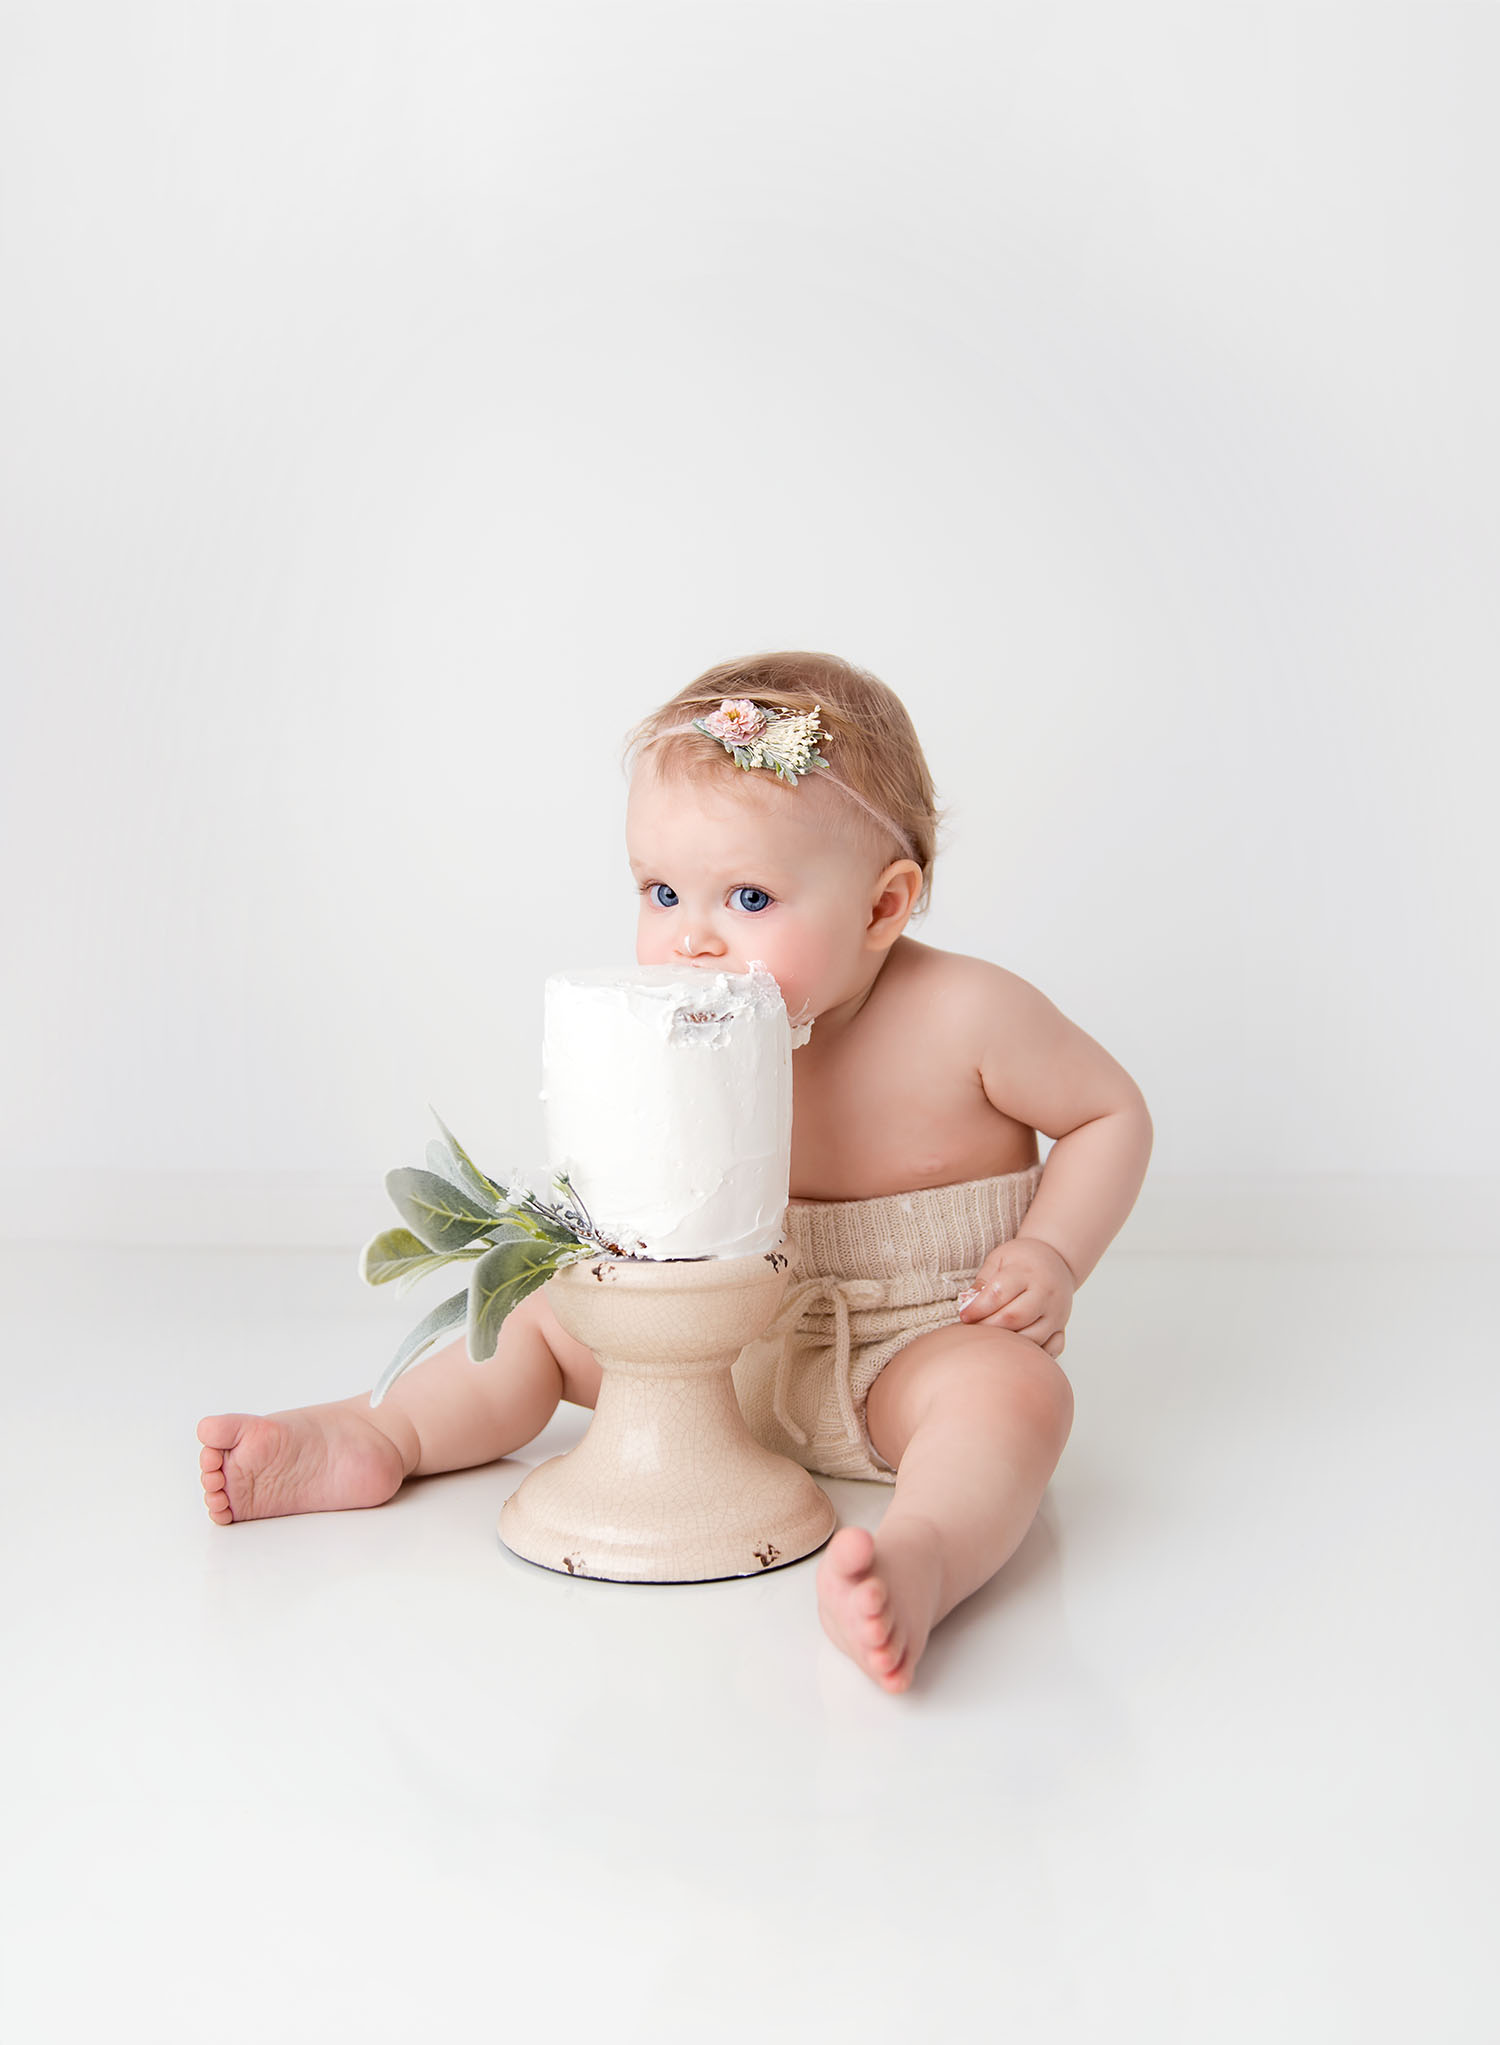 child-children-baby-photographer-photos-savannah-richmond-hill-baby-photos-ga10.jpg